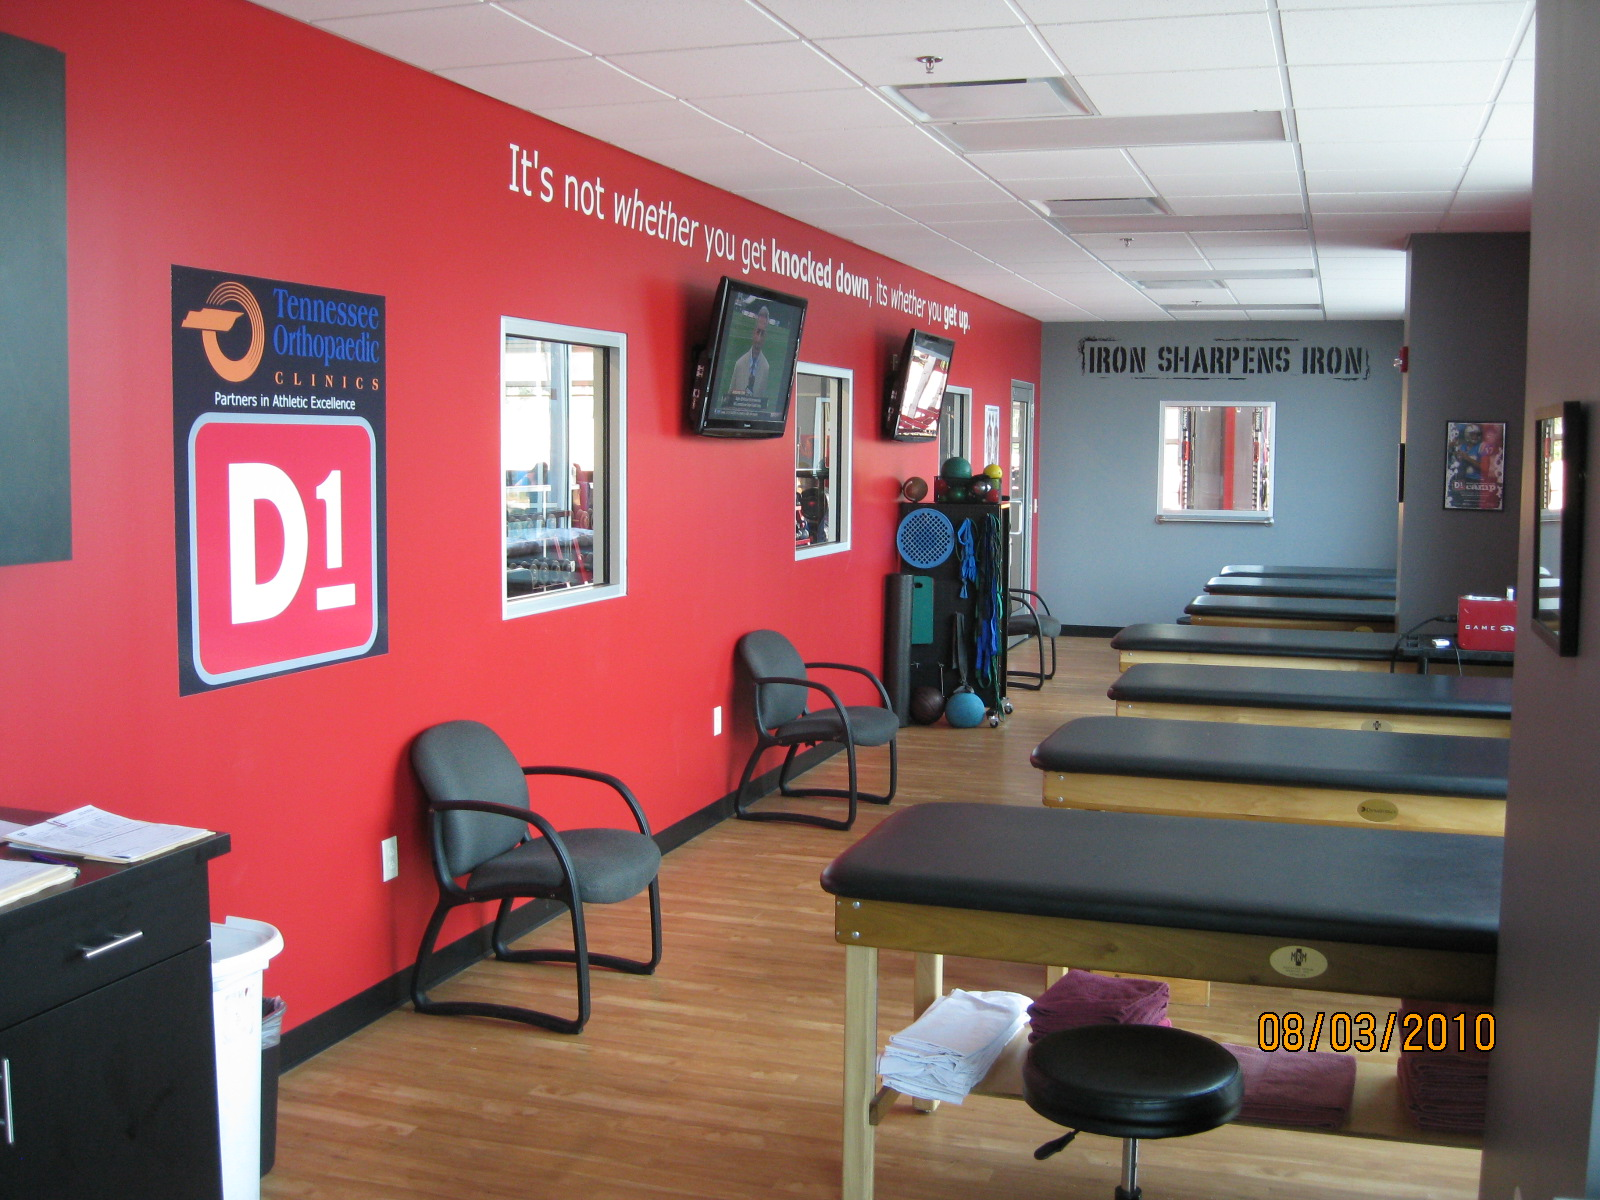 D1 fitness sports training smith gee studio for Interior design schools in knoxville tn